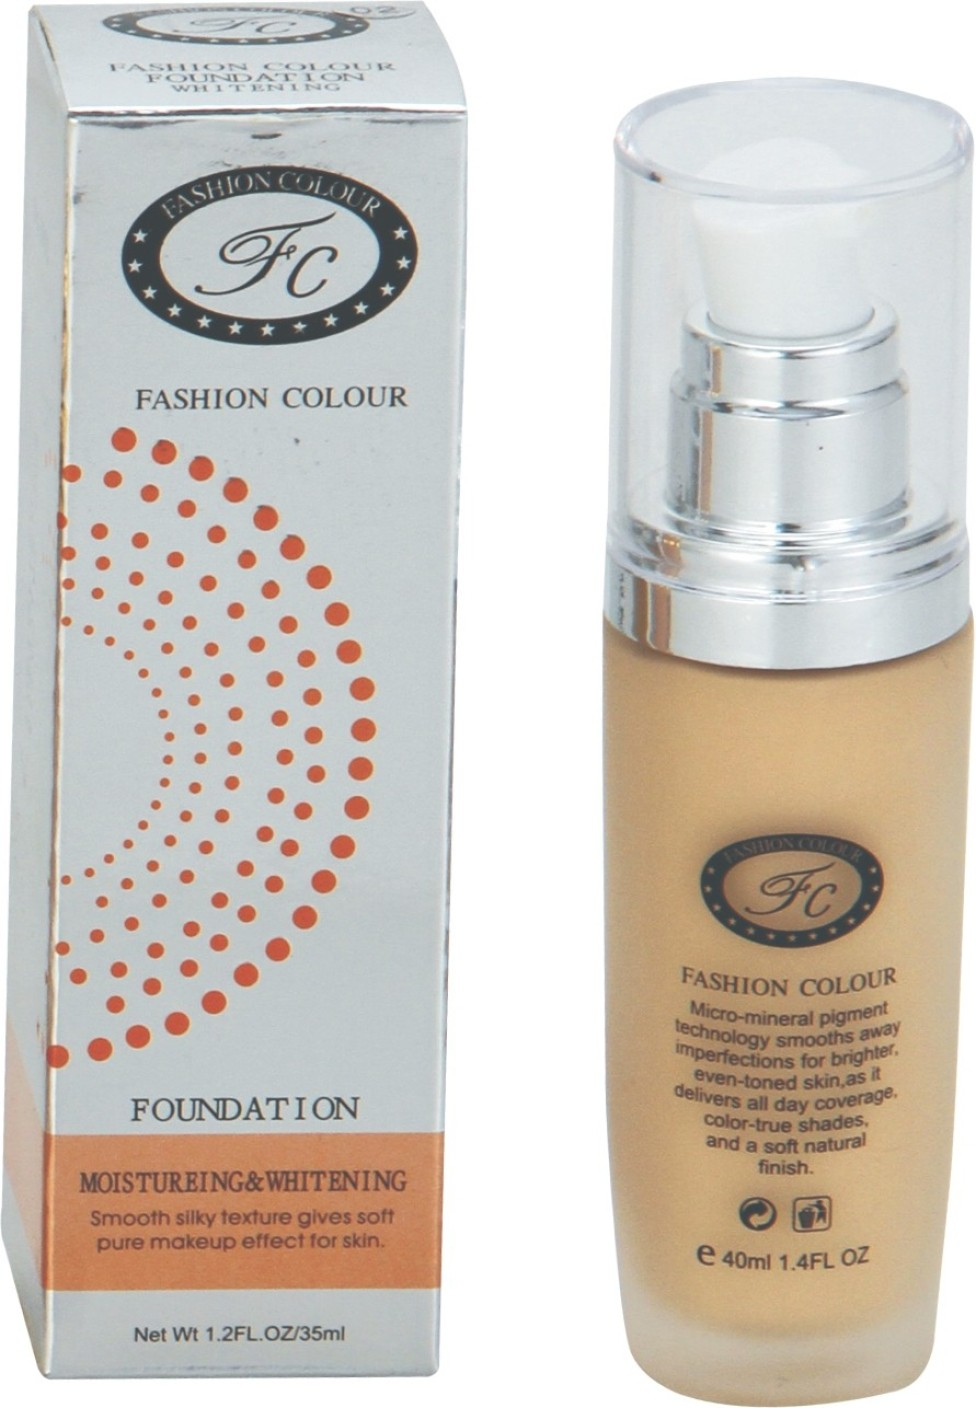 Colour care foundation - Colour Care Foundation Fashion Colour If01 Foundation Add To Cart